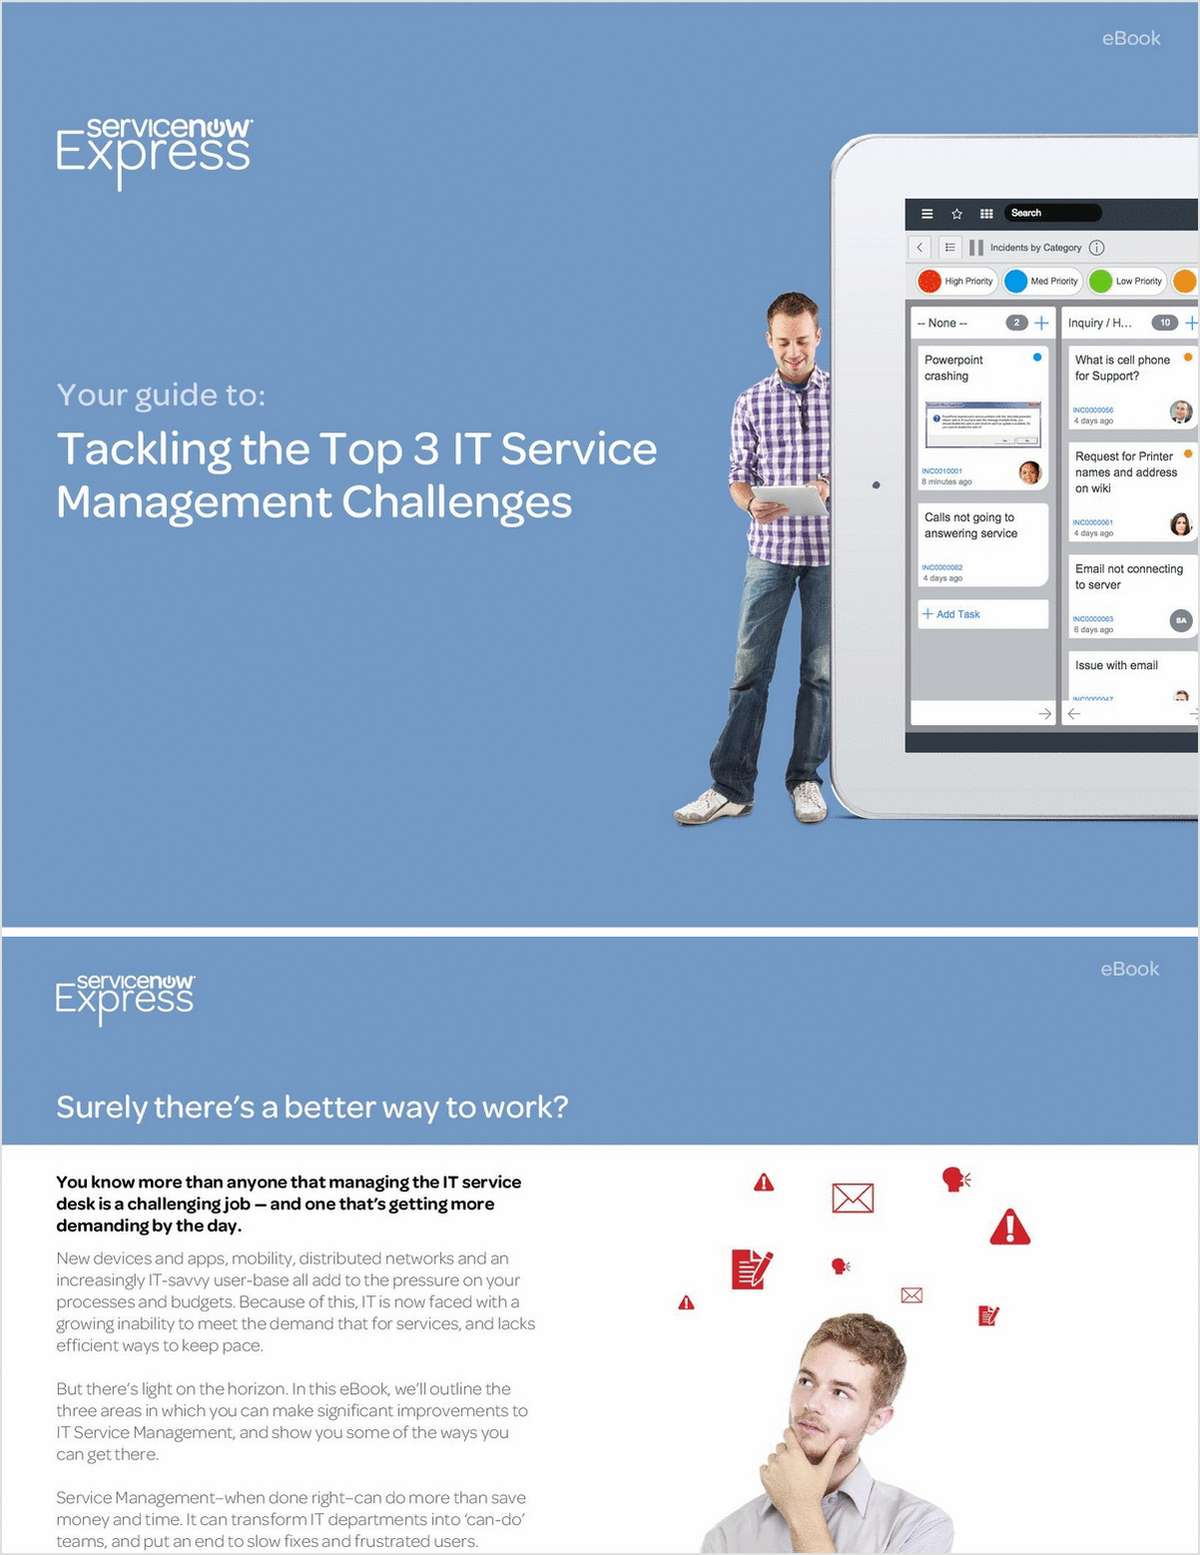 Tackling the Top 3 IT Service Management Challenges